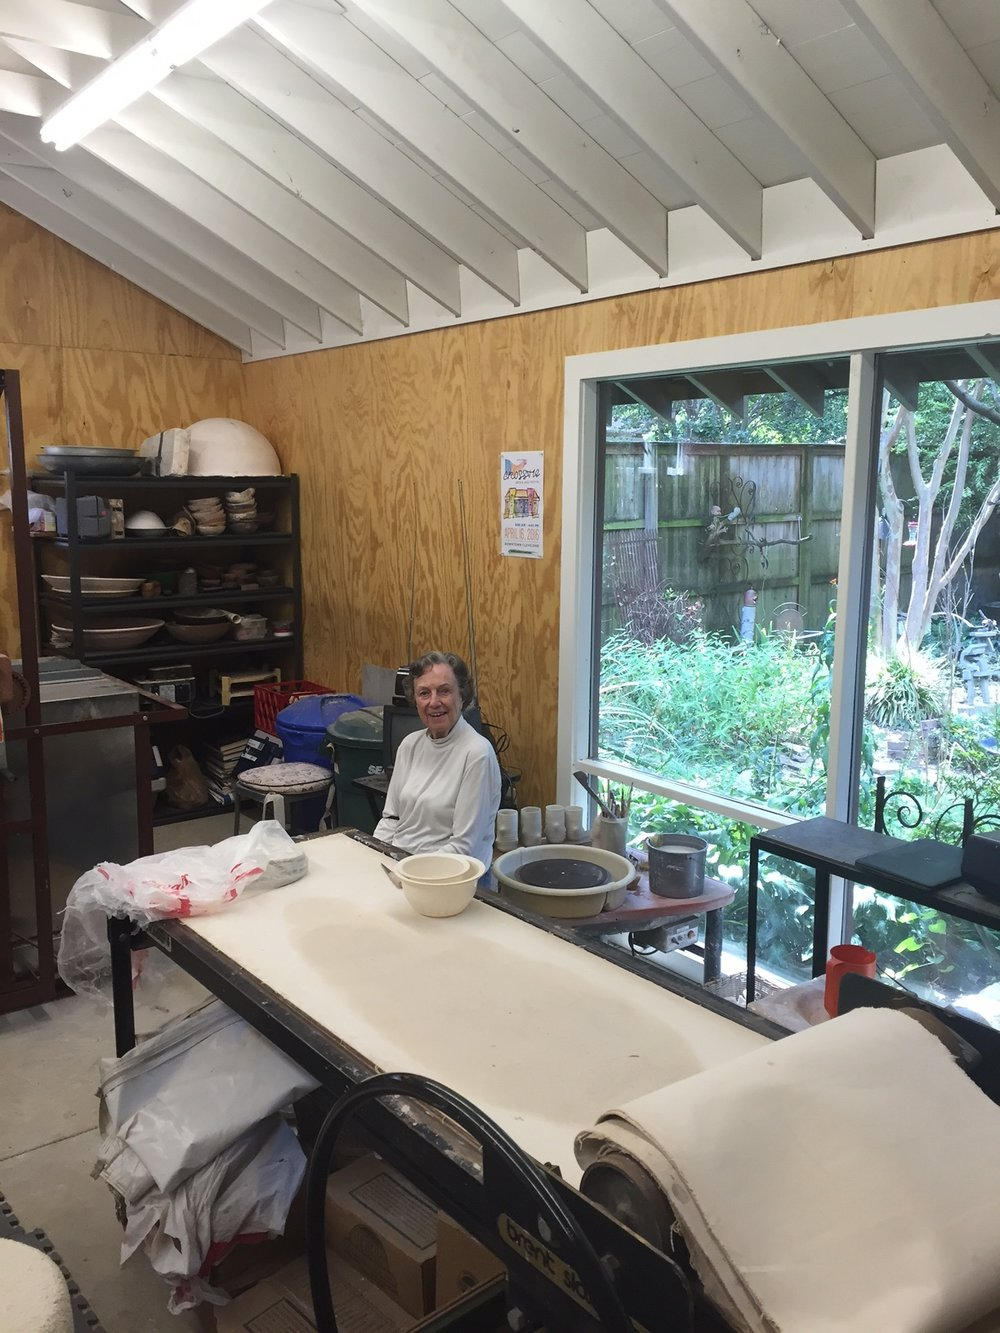 Mimi Dann, Artist in Residence for the day at the new Katie Dann Ceramic Studio.